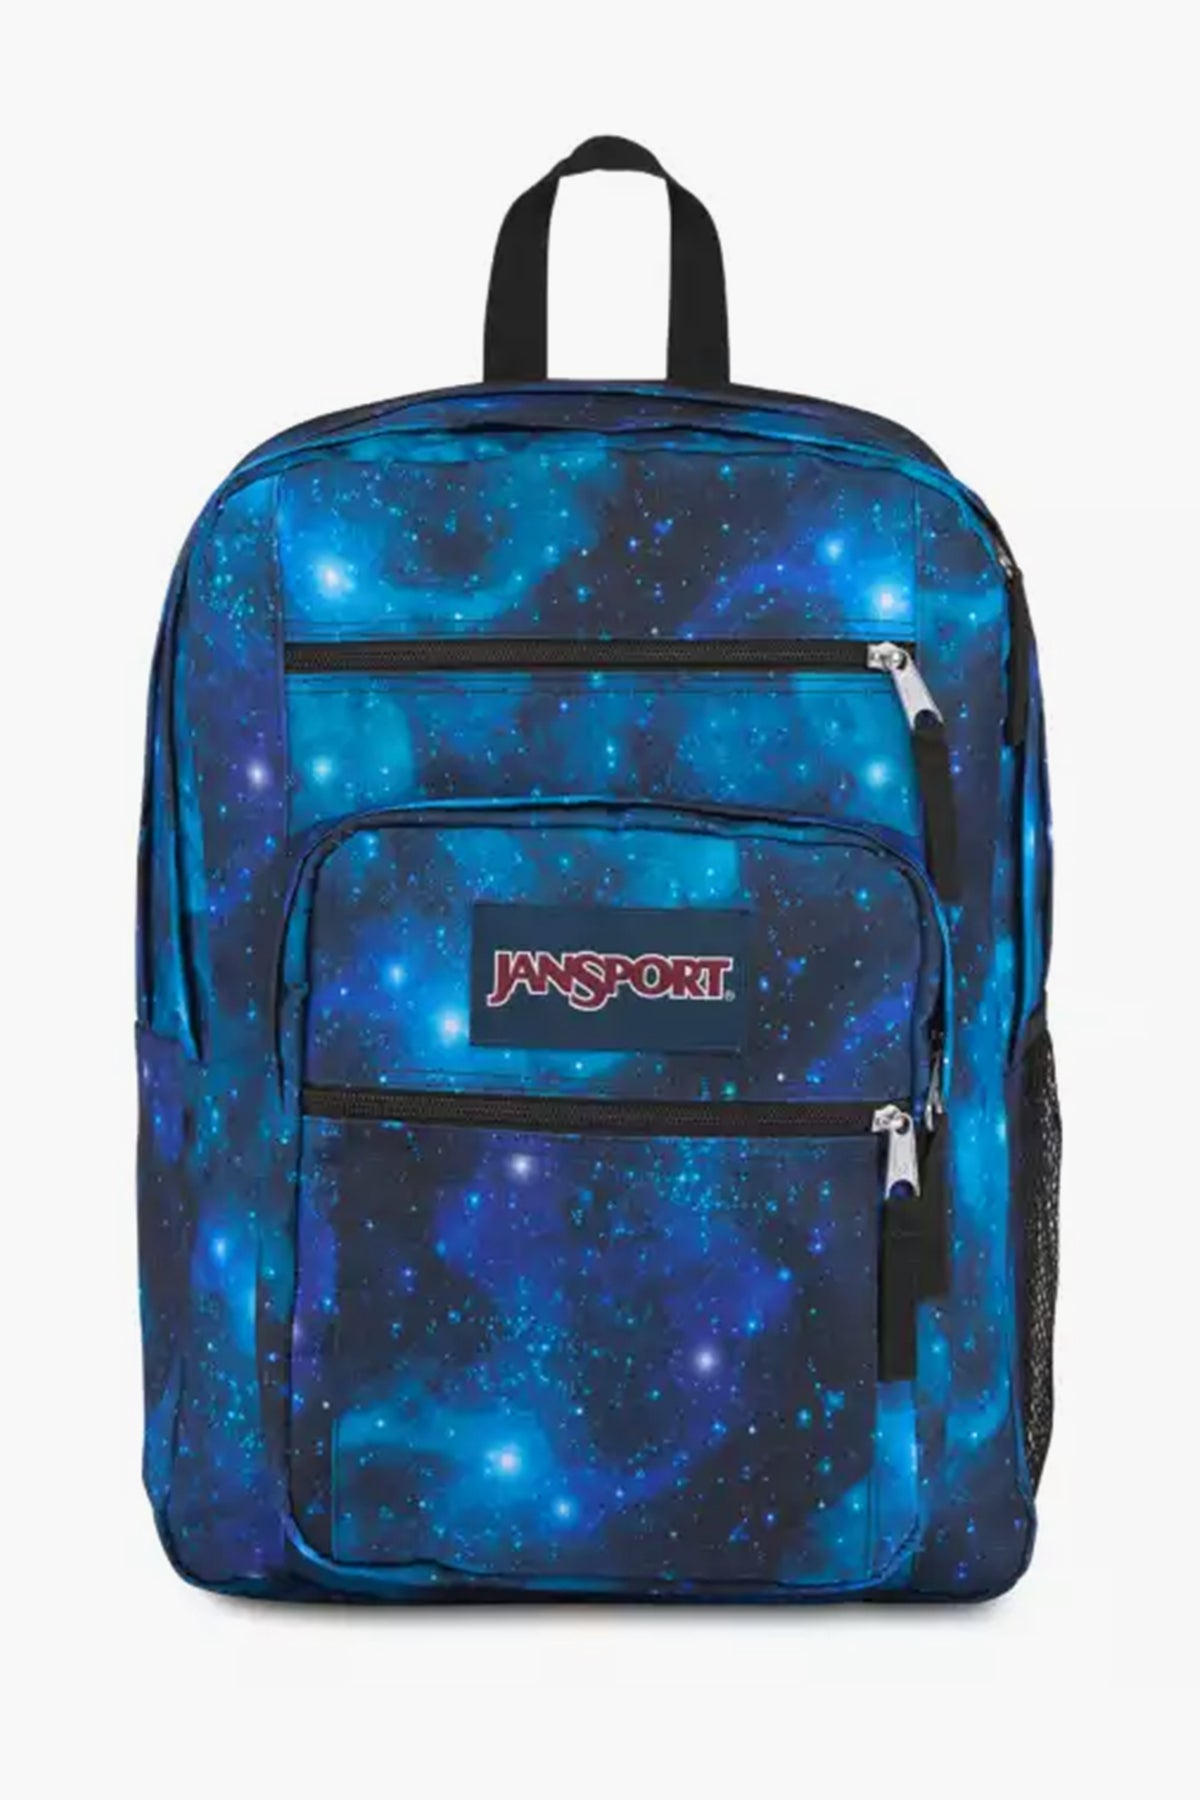 JanSport Big Student Kids Backpack - Galaxy